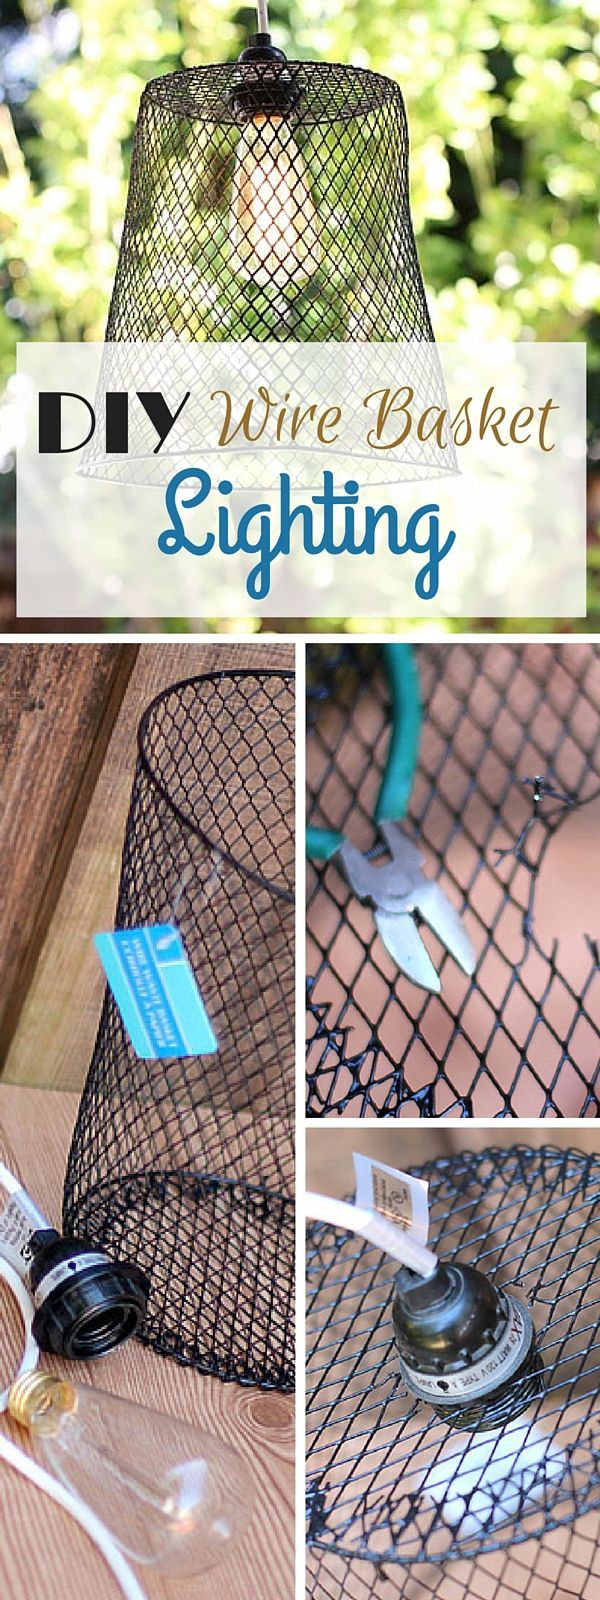 Check out the tutorial: #DIY Wire Basket Lighting #crafts #homedecor